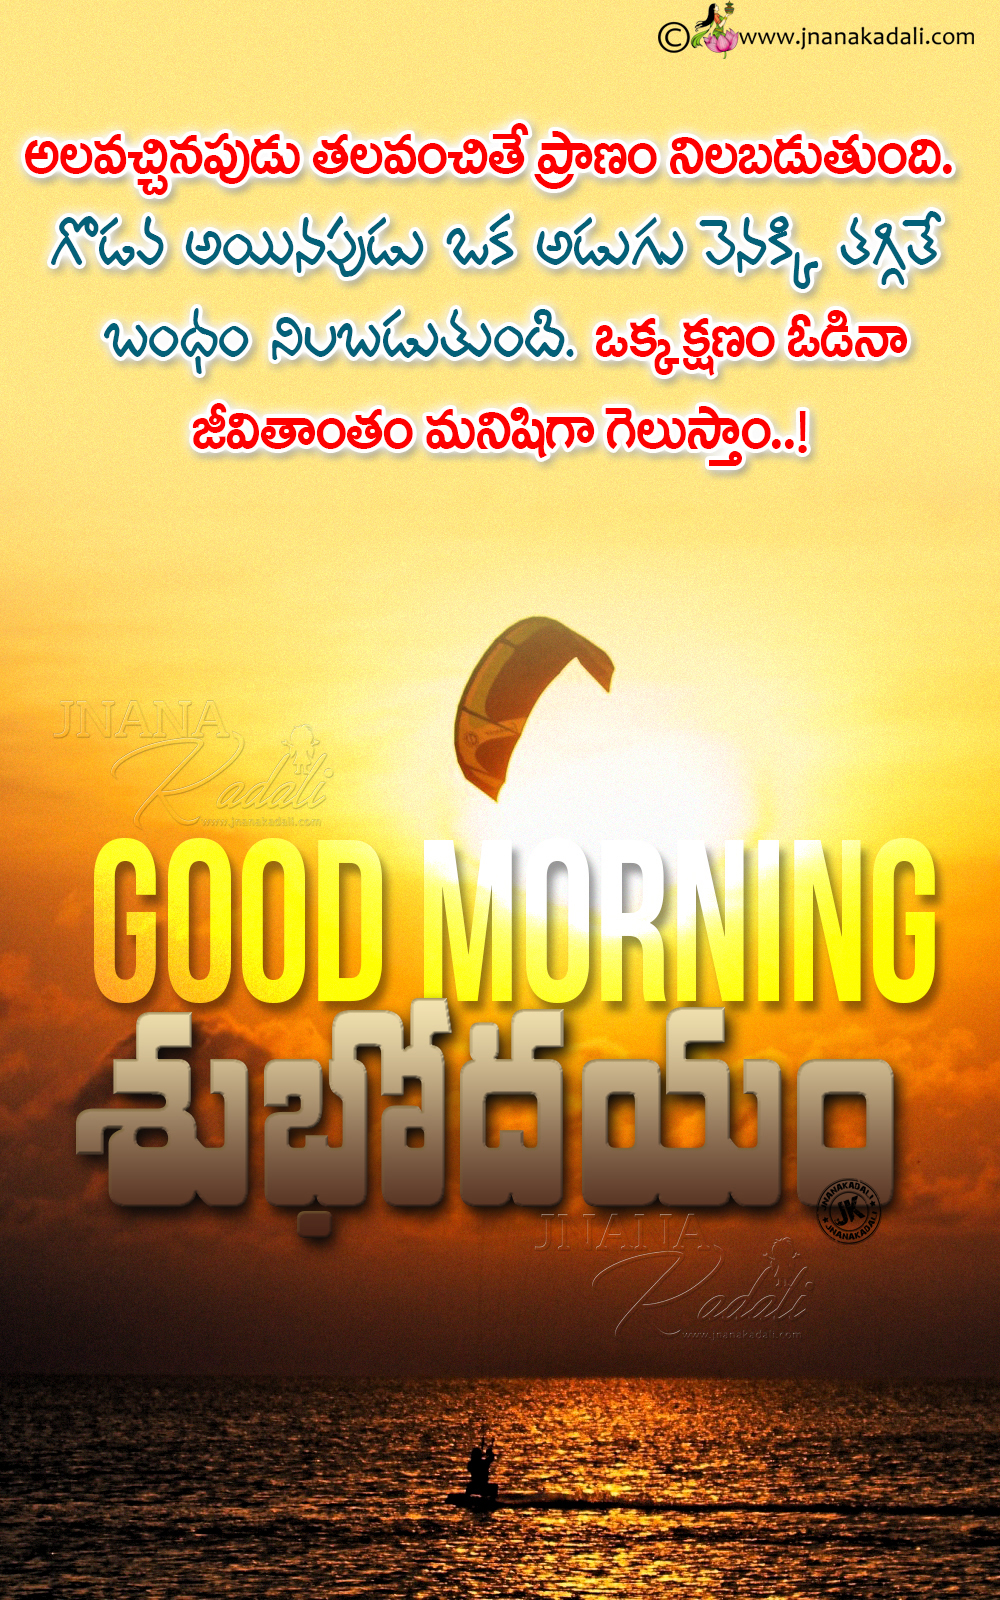 Telugu Good Morning Messages Quotes, Best Good Morning Sayings In Telugu,  Subhodayam Messages Online